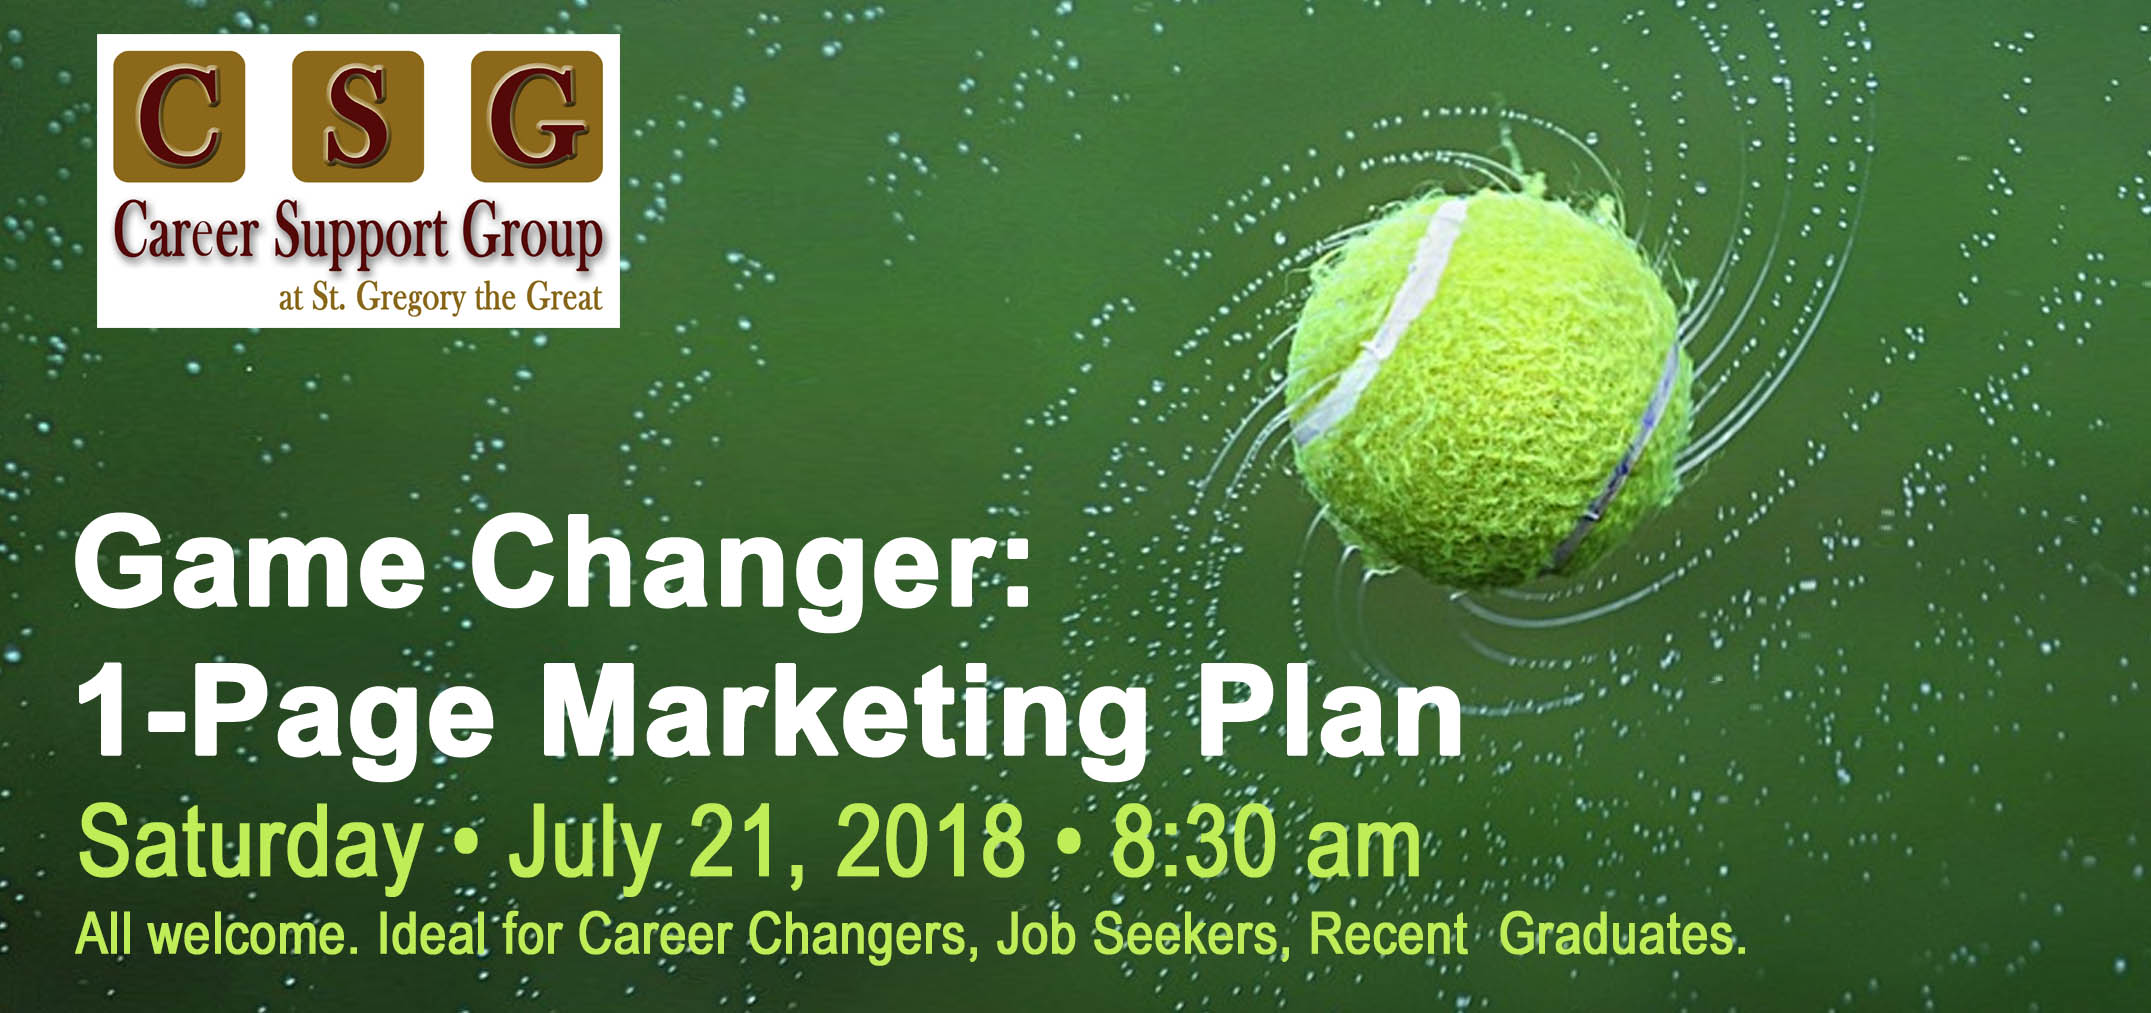 Game changer july 21 2018 career support group at st gregory game changer july 21 2018 career support group at st gregory the great altavistaventures Image collections